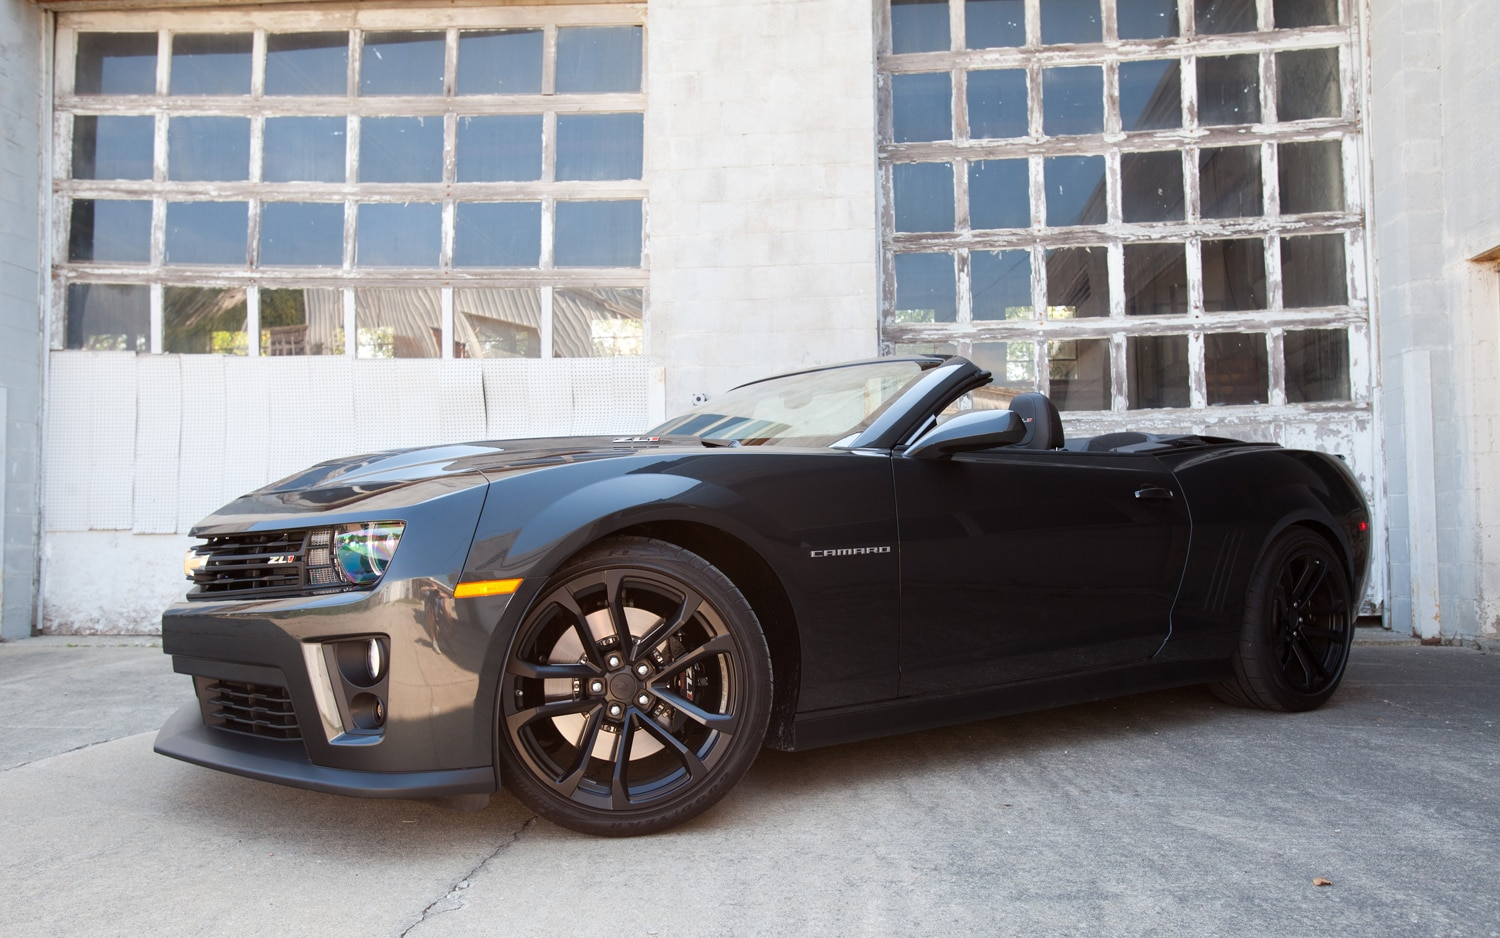 2013 Chevrolet Camaro ZL1 Convertible Front Left Side View 21